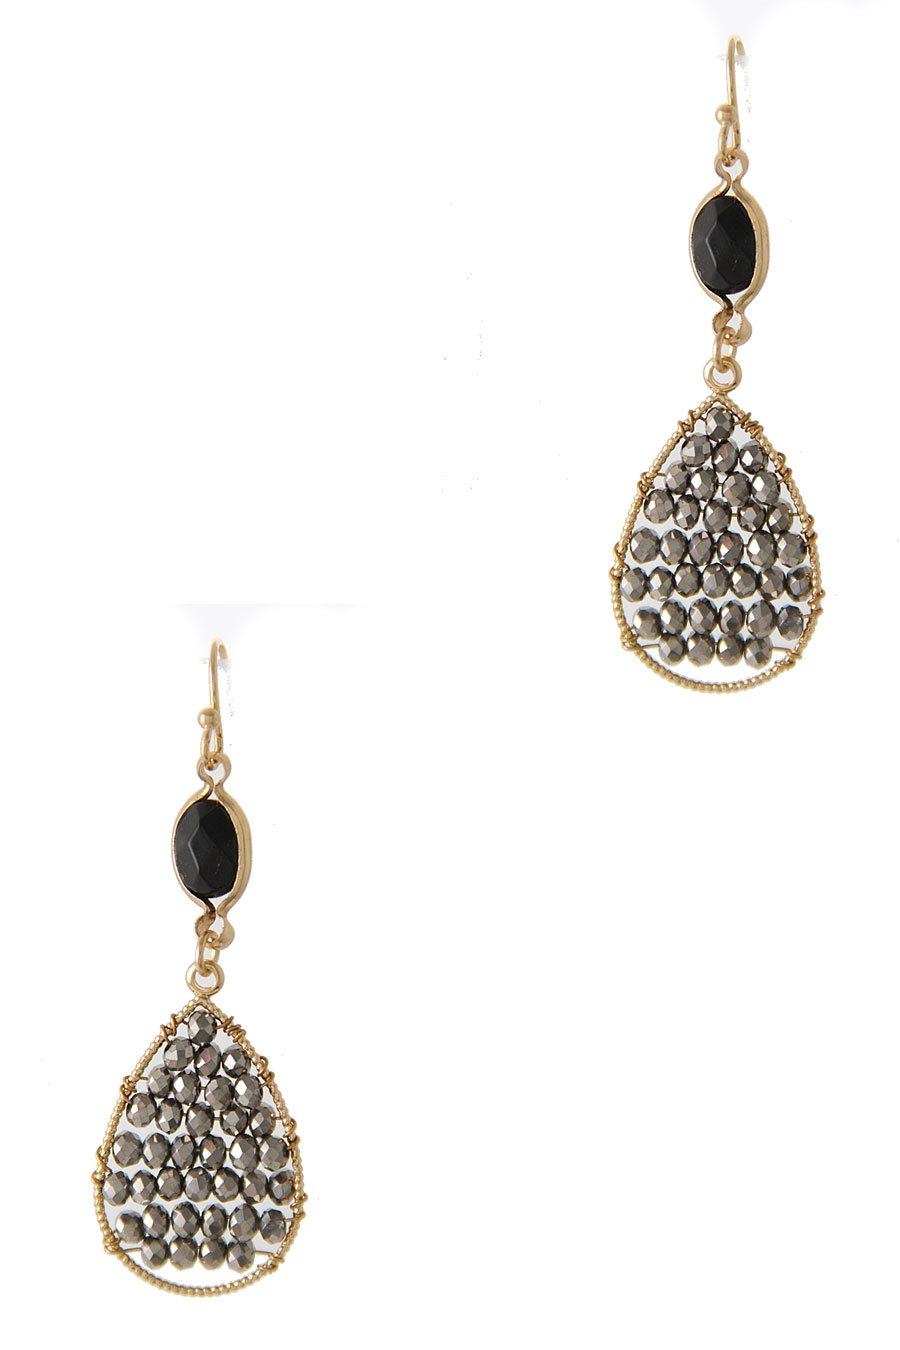 TEARDROP GLASS BEAD EARRING - orangeshine.com